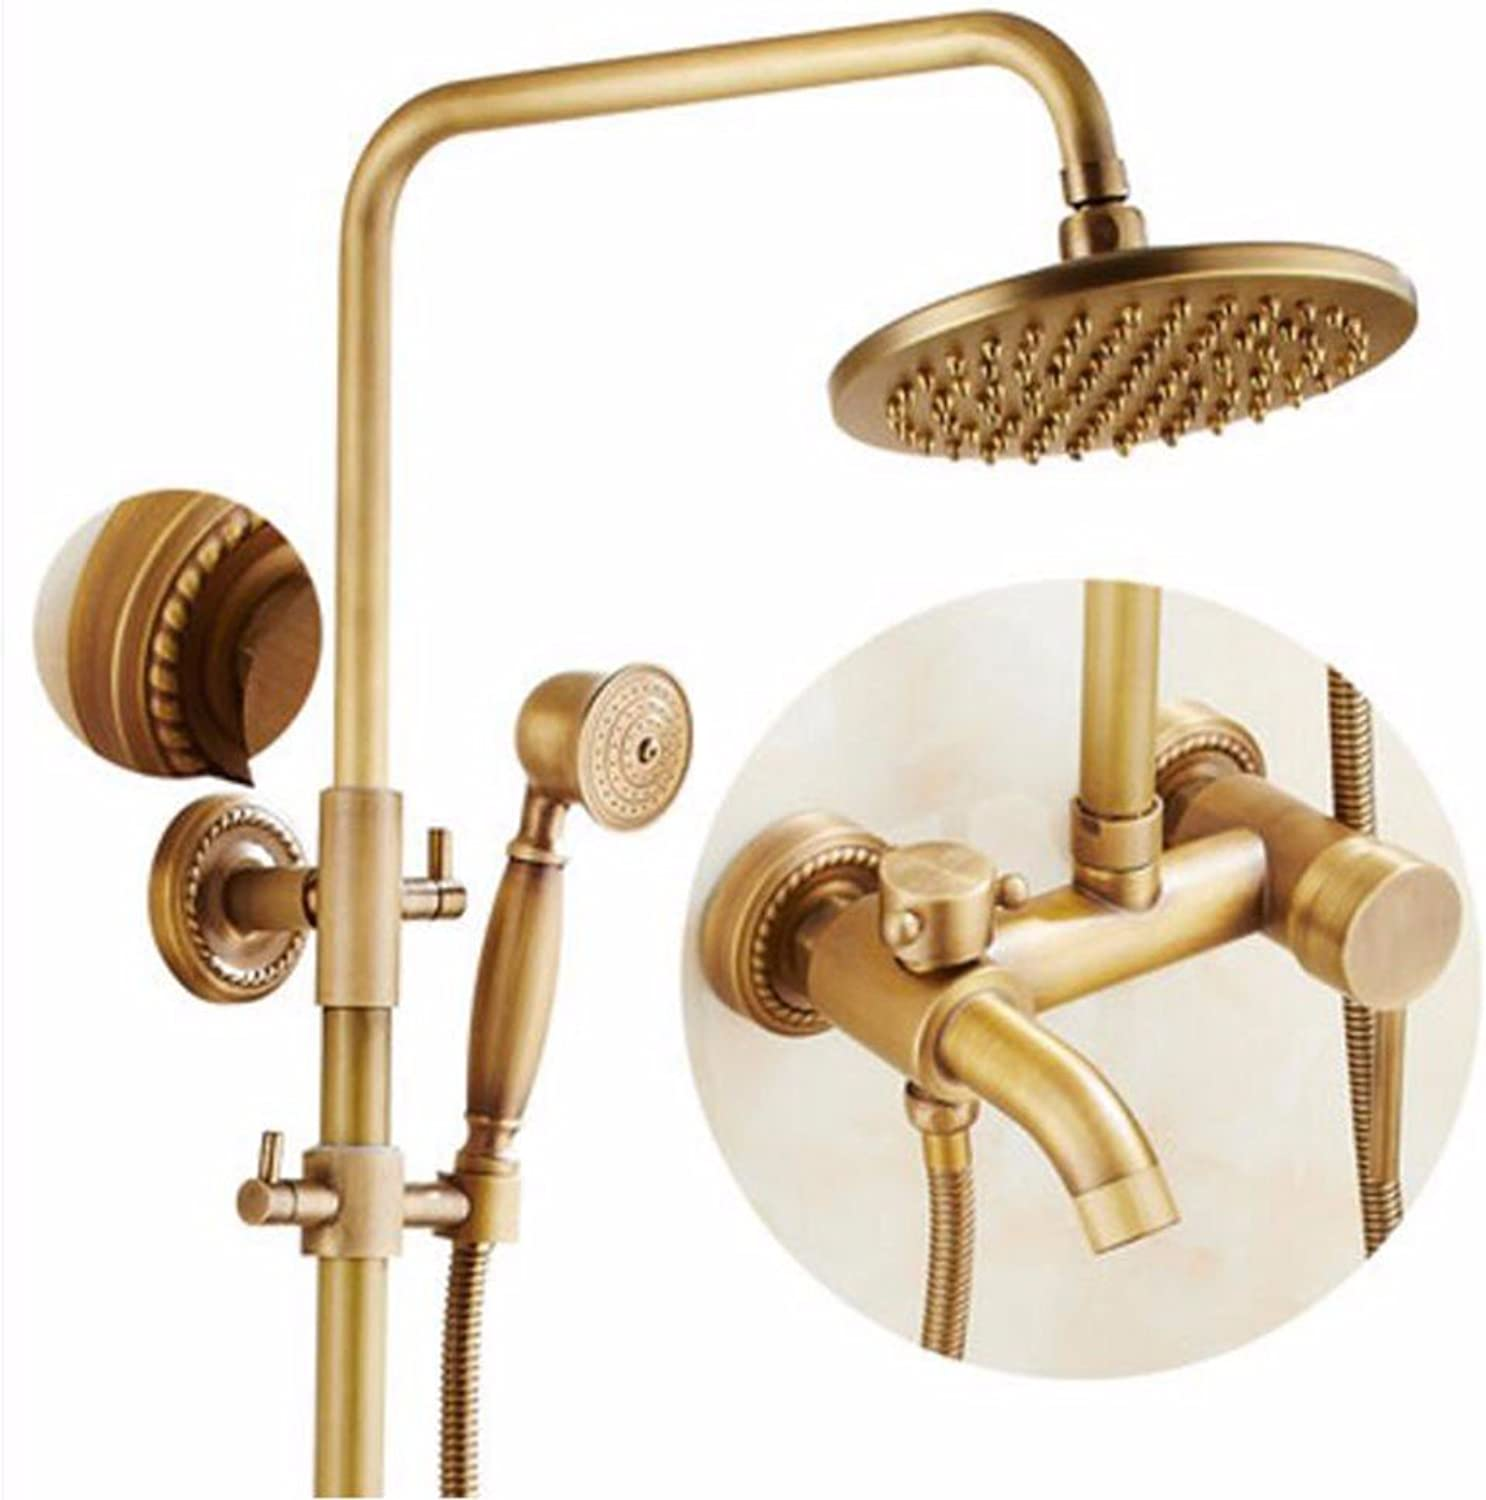 Shower set Antique Shower Shower Set Shower Nozzle European Style All Copper Shower Shower Retro Shower Hot And Cold Faucet,B